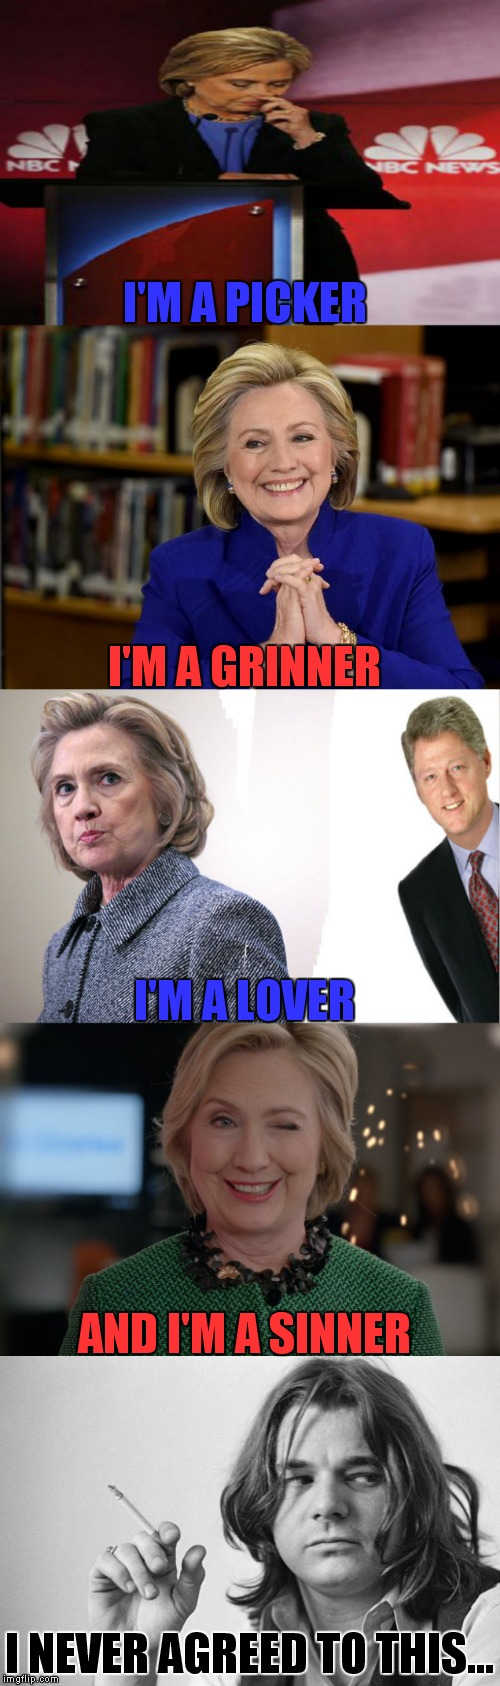 Poor Steve Miller :( | I'M A PICKER I NEVER AGREED TO THIS... I'M A GRINNER AND I'M A SINNER I'M A LOVER | image tagged in hillary clinton,stealing,steve miller band | made w/ Imgflip meme maker